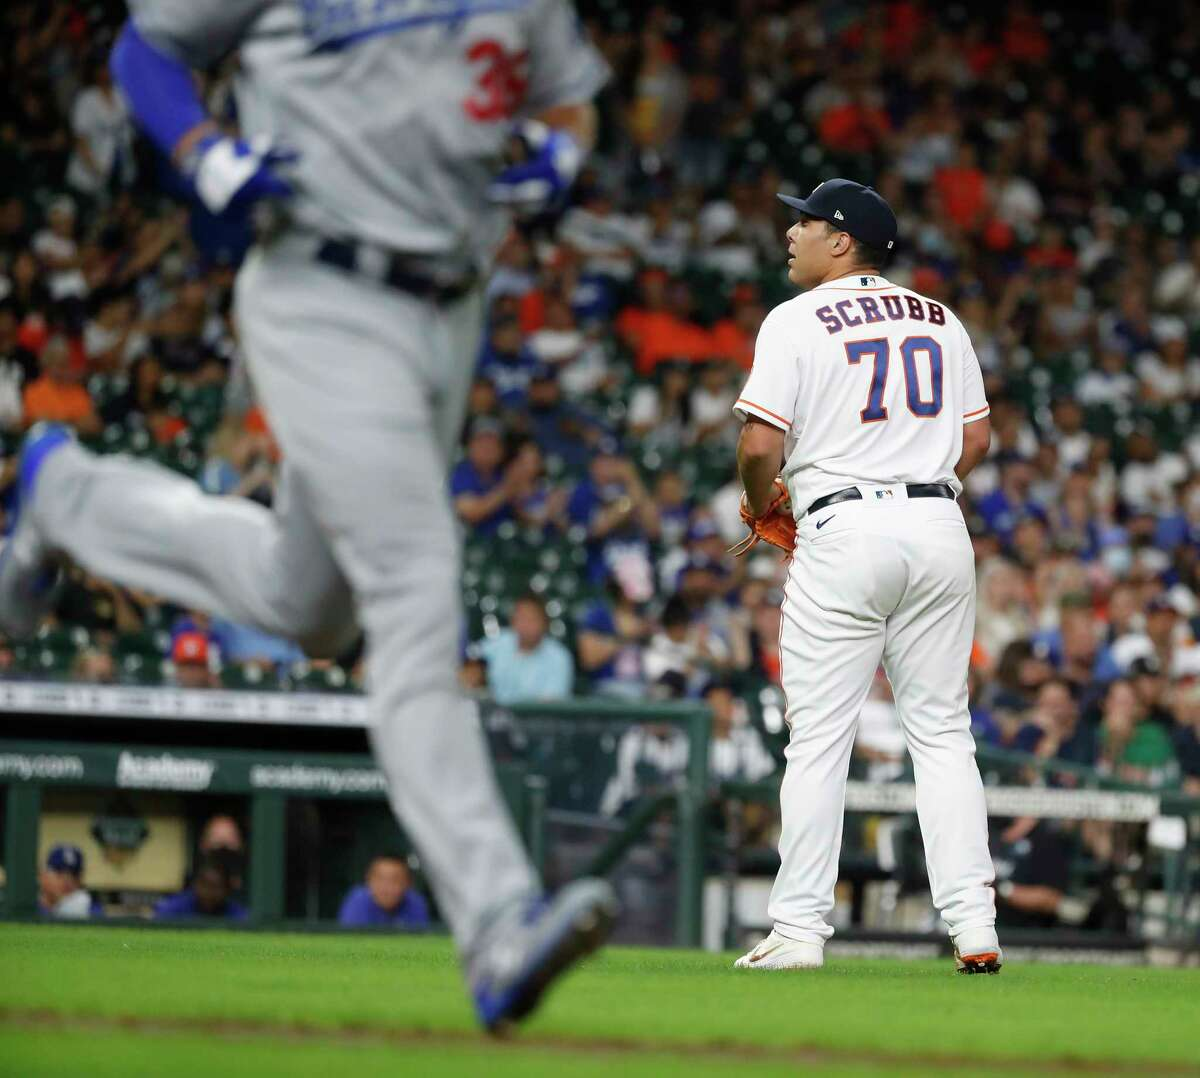 Houston Astros relief pitcher Andre Scrubb (70) reacts as he issued a walk to Los Angeles Dodgers DJ Peters to load the bases during the ninth inning of an MLB baseball game at Minute Maid Park, Tuesday, May 25, 2021, in Houston.